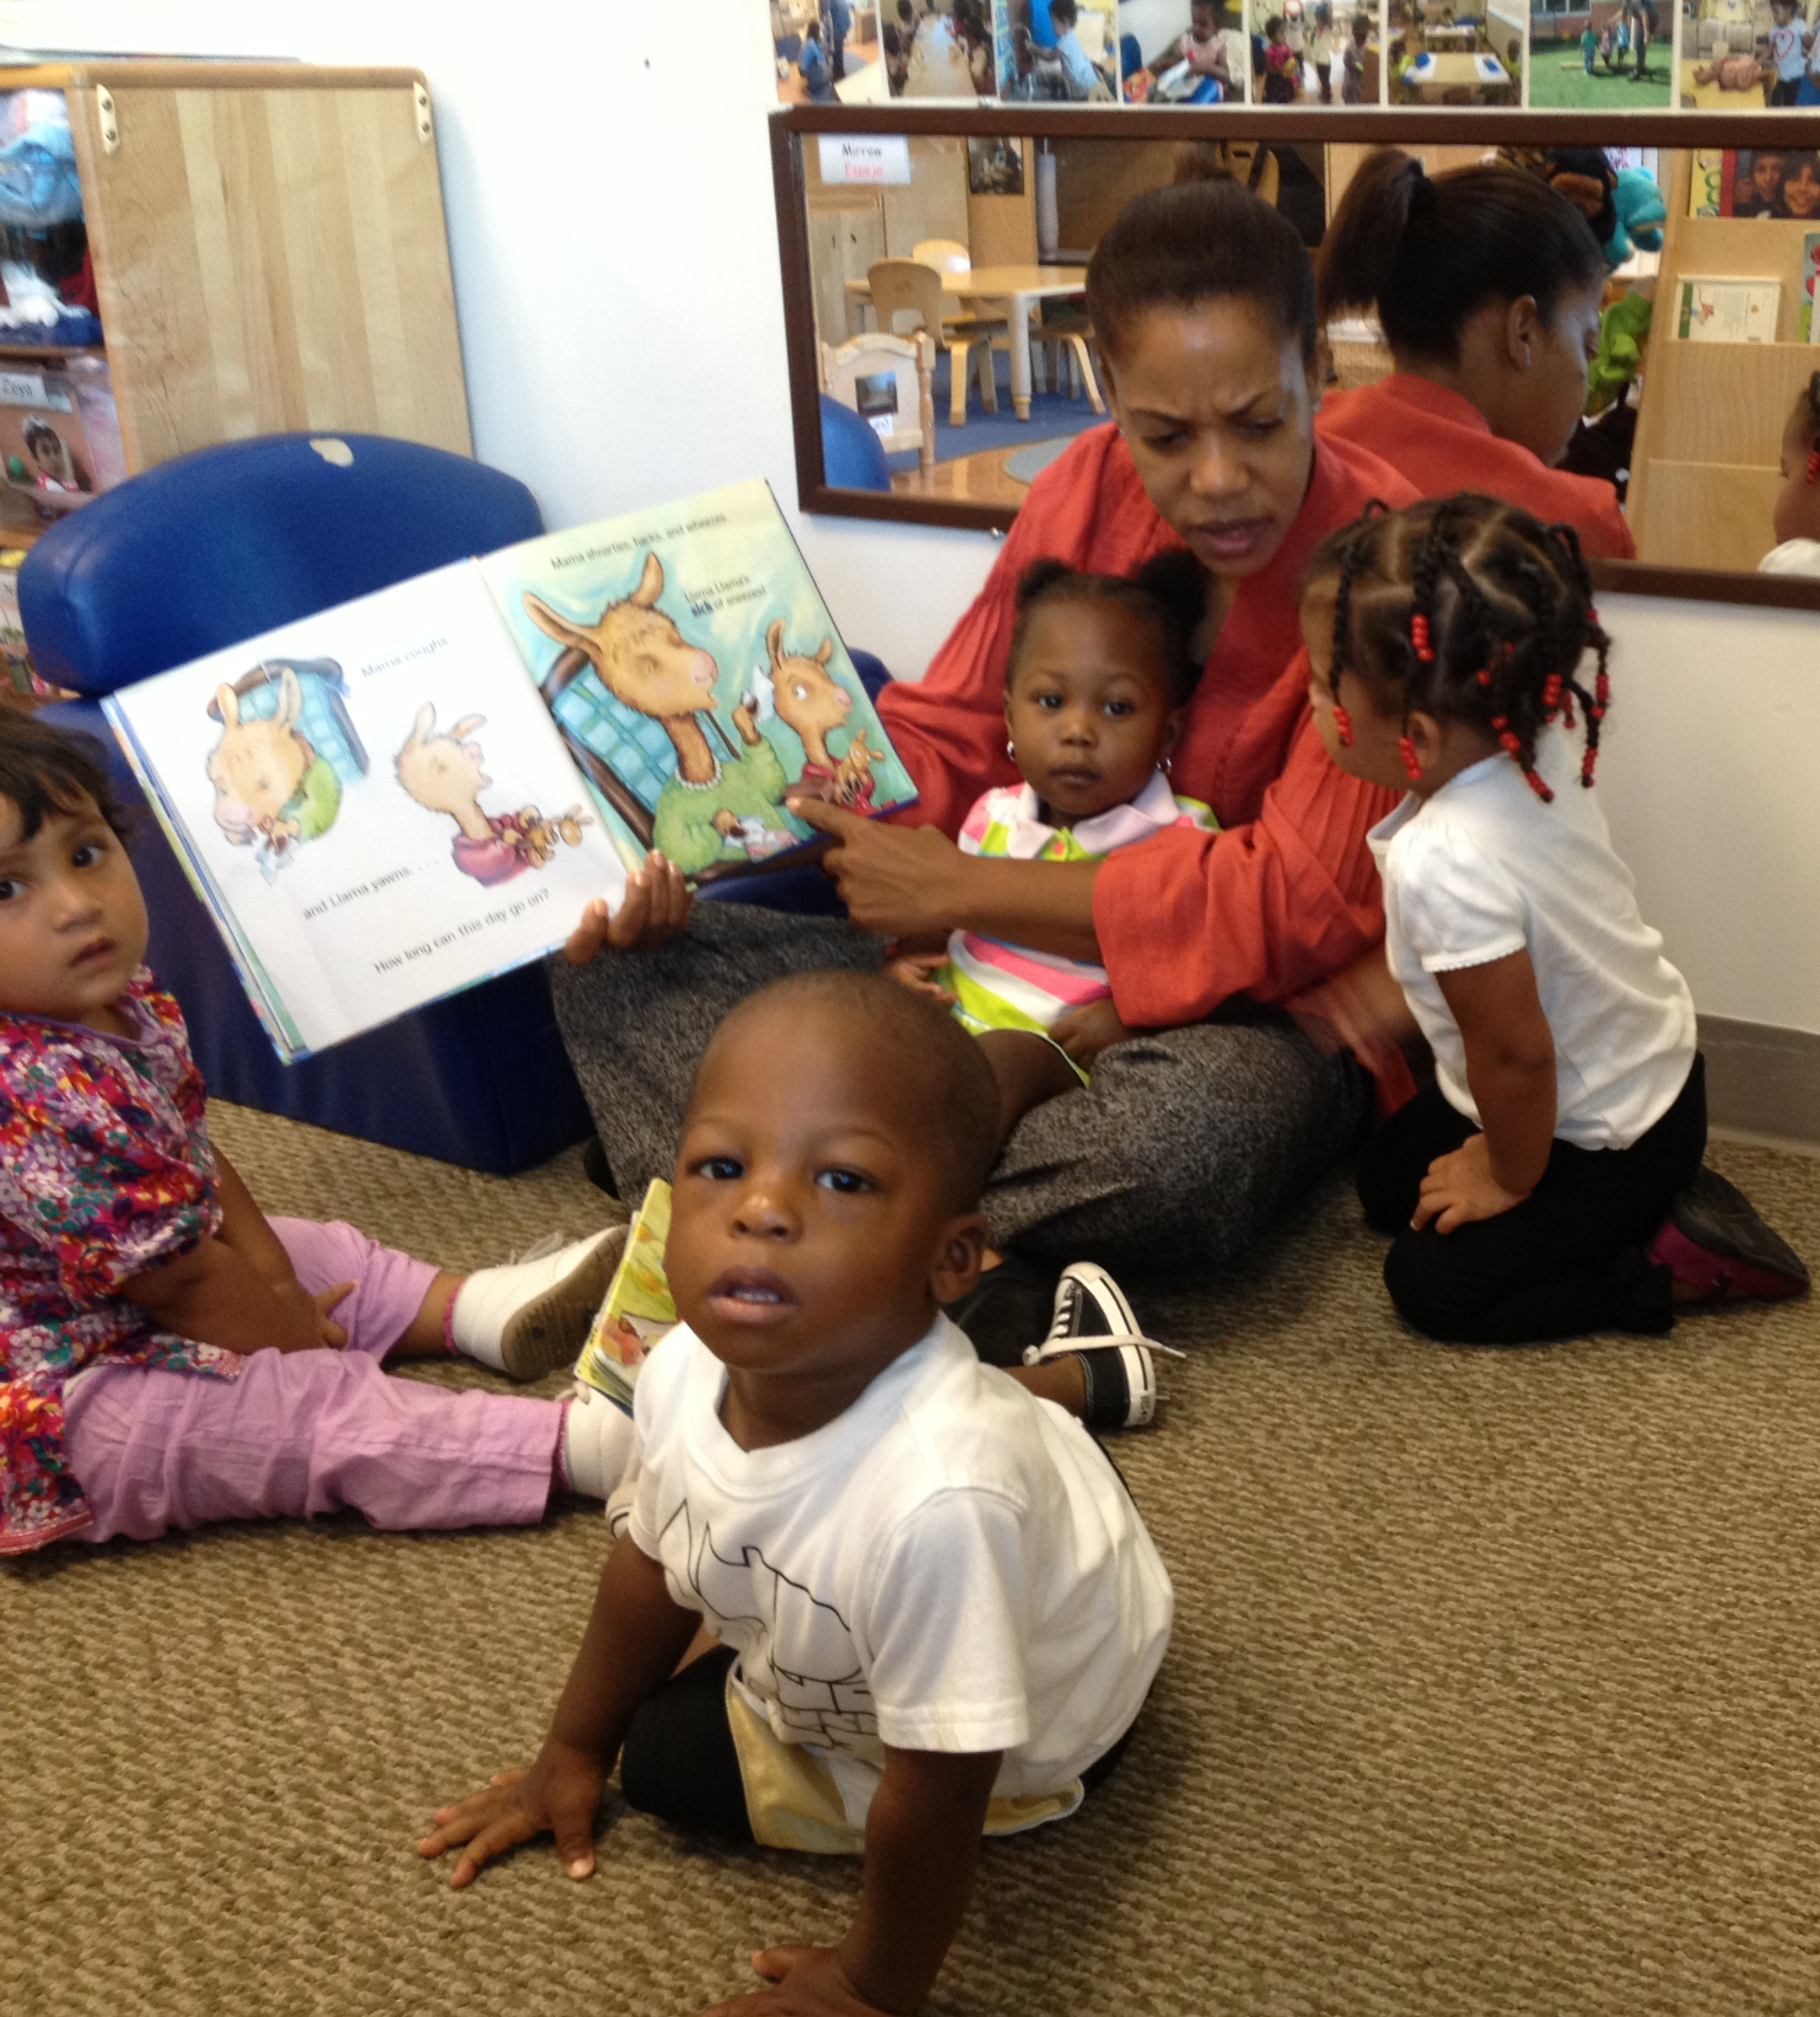 Early Learning: Benefits, And Barriers, To Early Learning In Florida